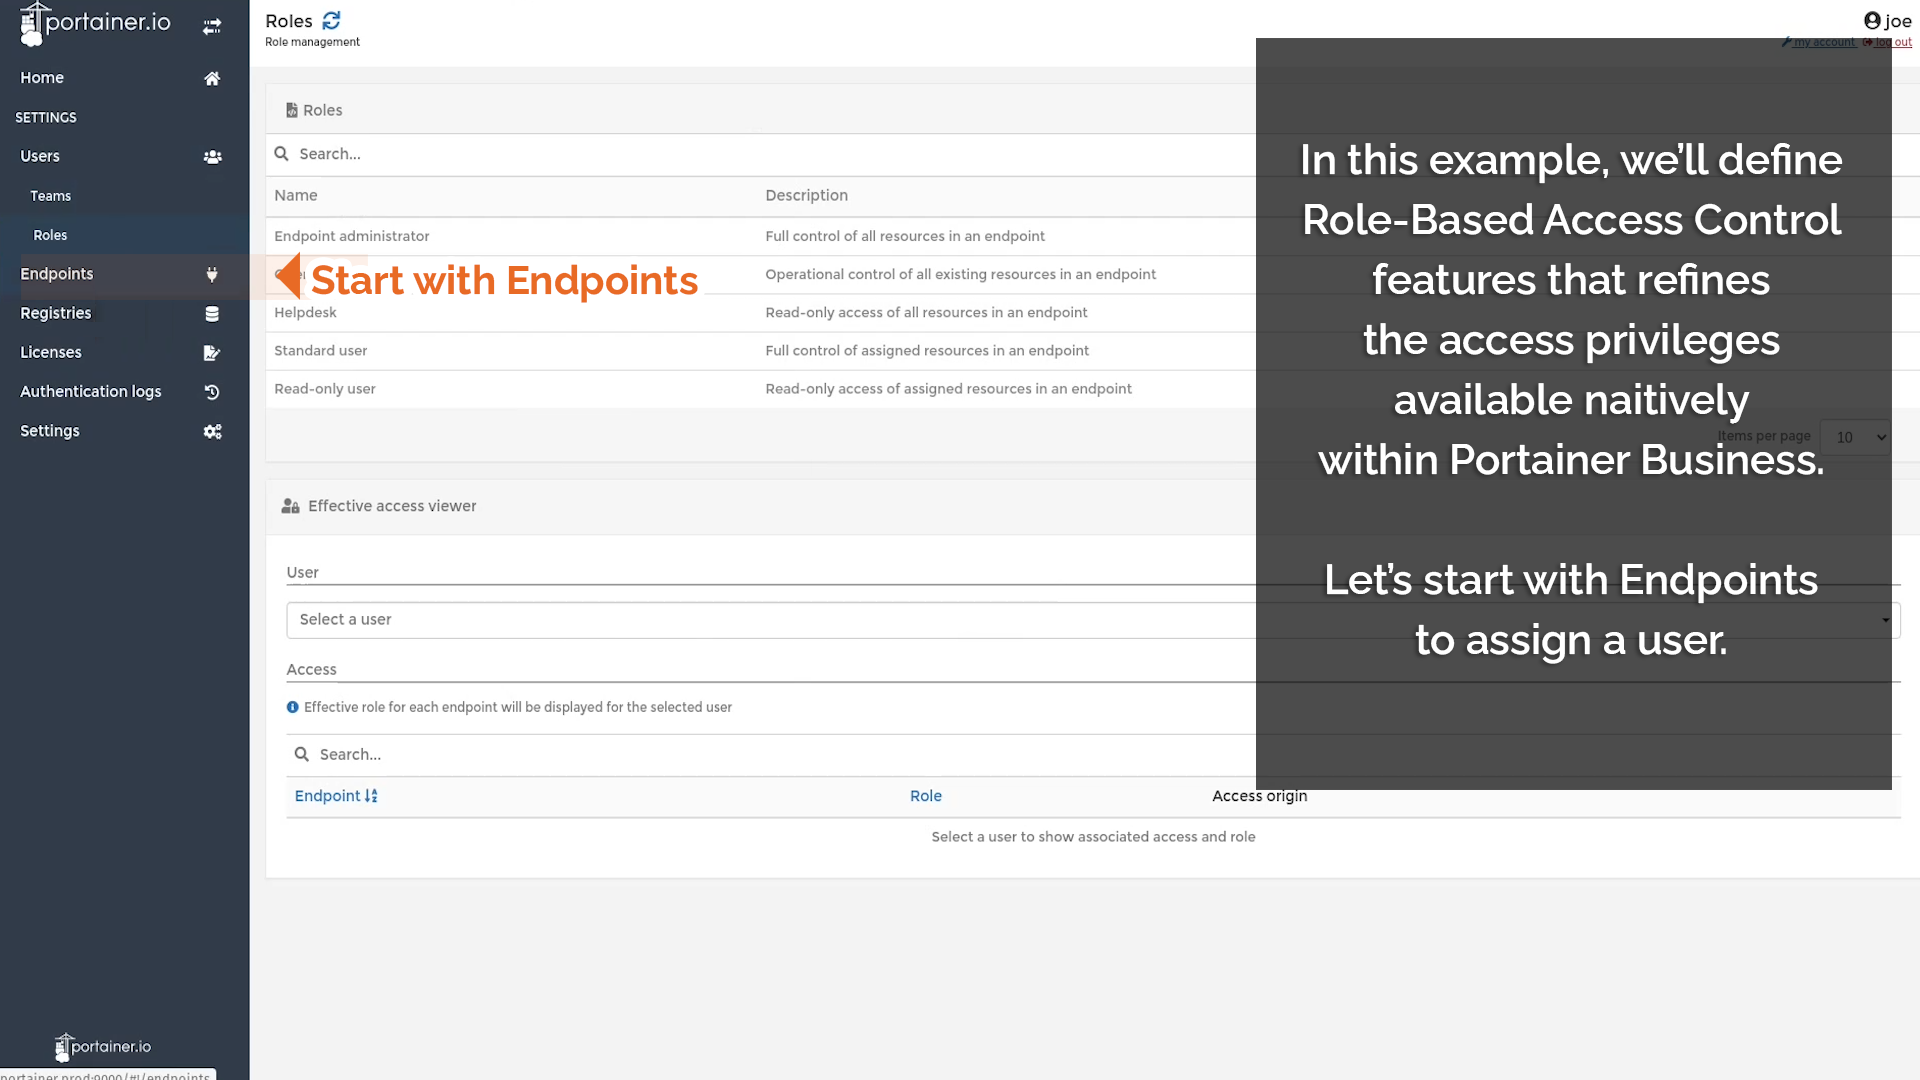 Start with Endpoints